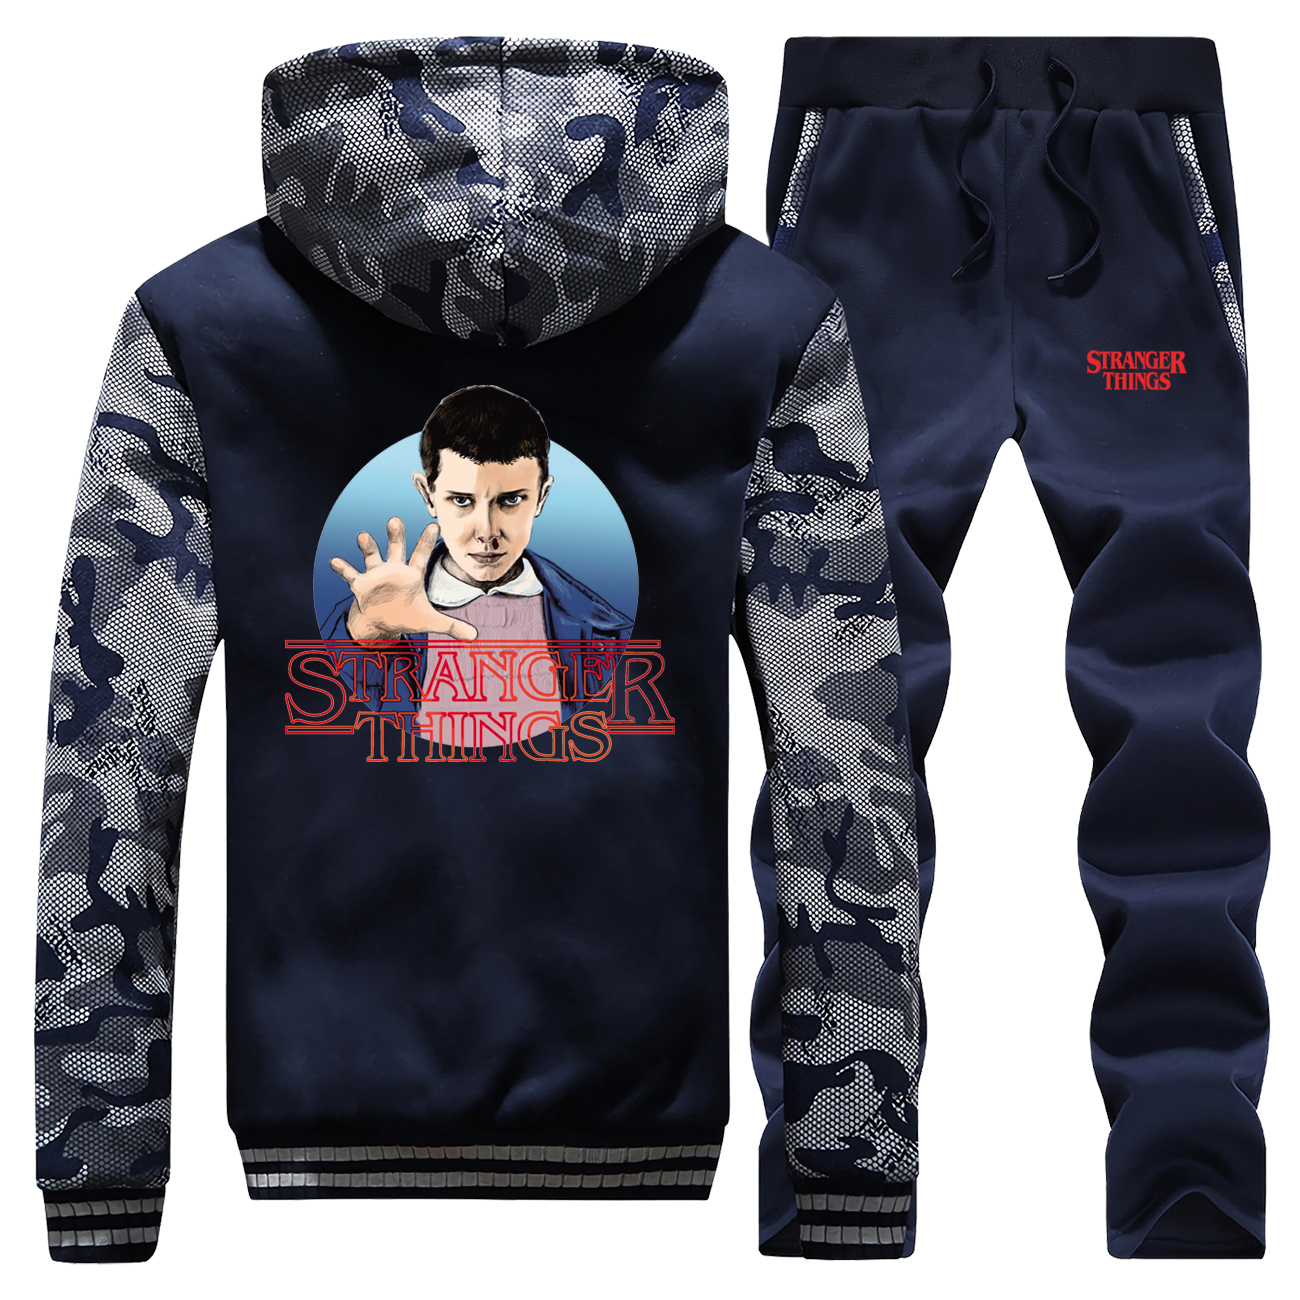 Stranger Things Hot Sale 2019 Winter Hip Hop Camouflage Hooded Mens Coat Thick Suit Sportswear Warm Jackets+2Piece Set Pants